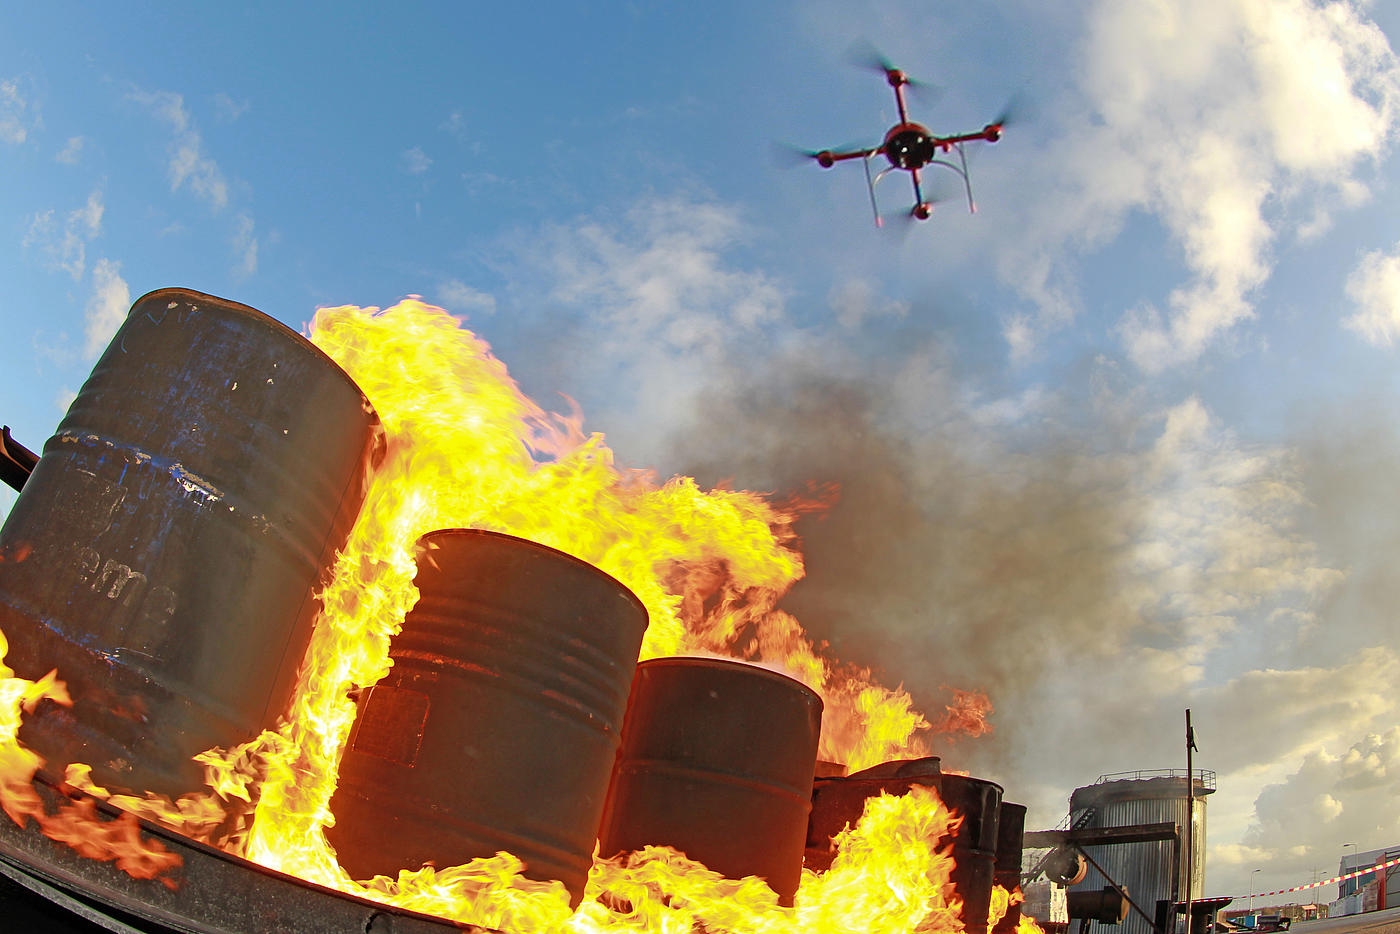 Microdrones quadcopter monitoring a fire during a fire drill